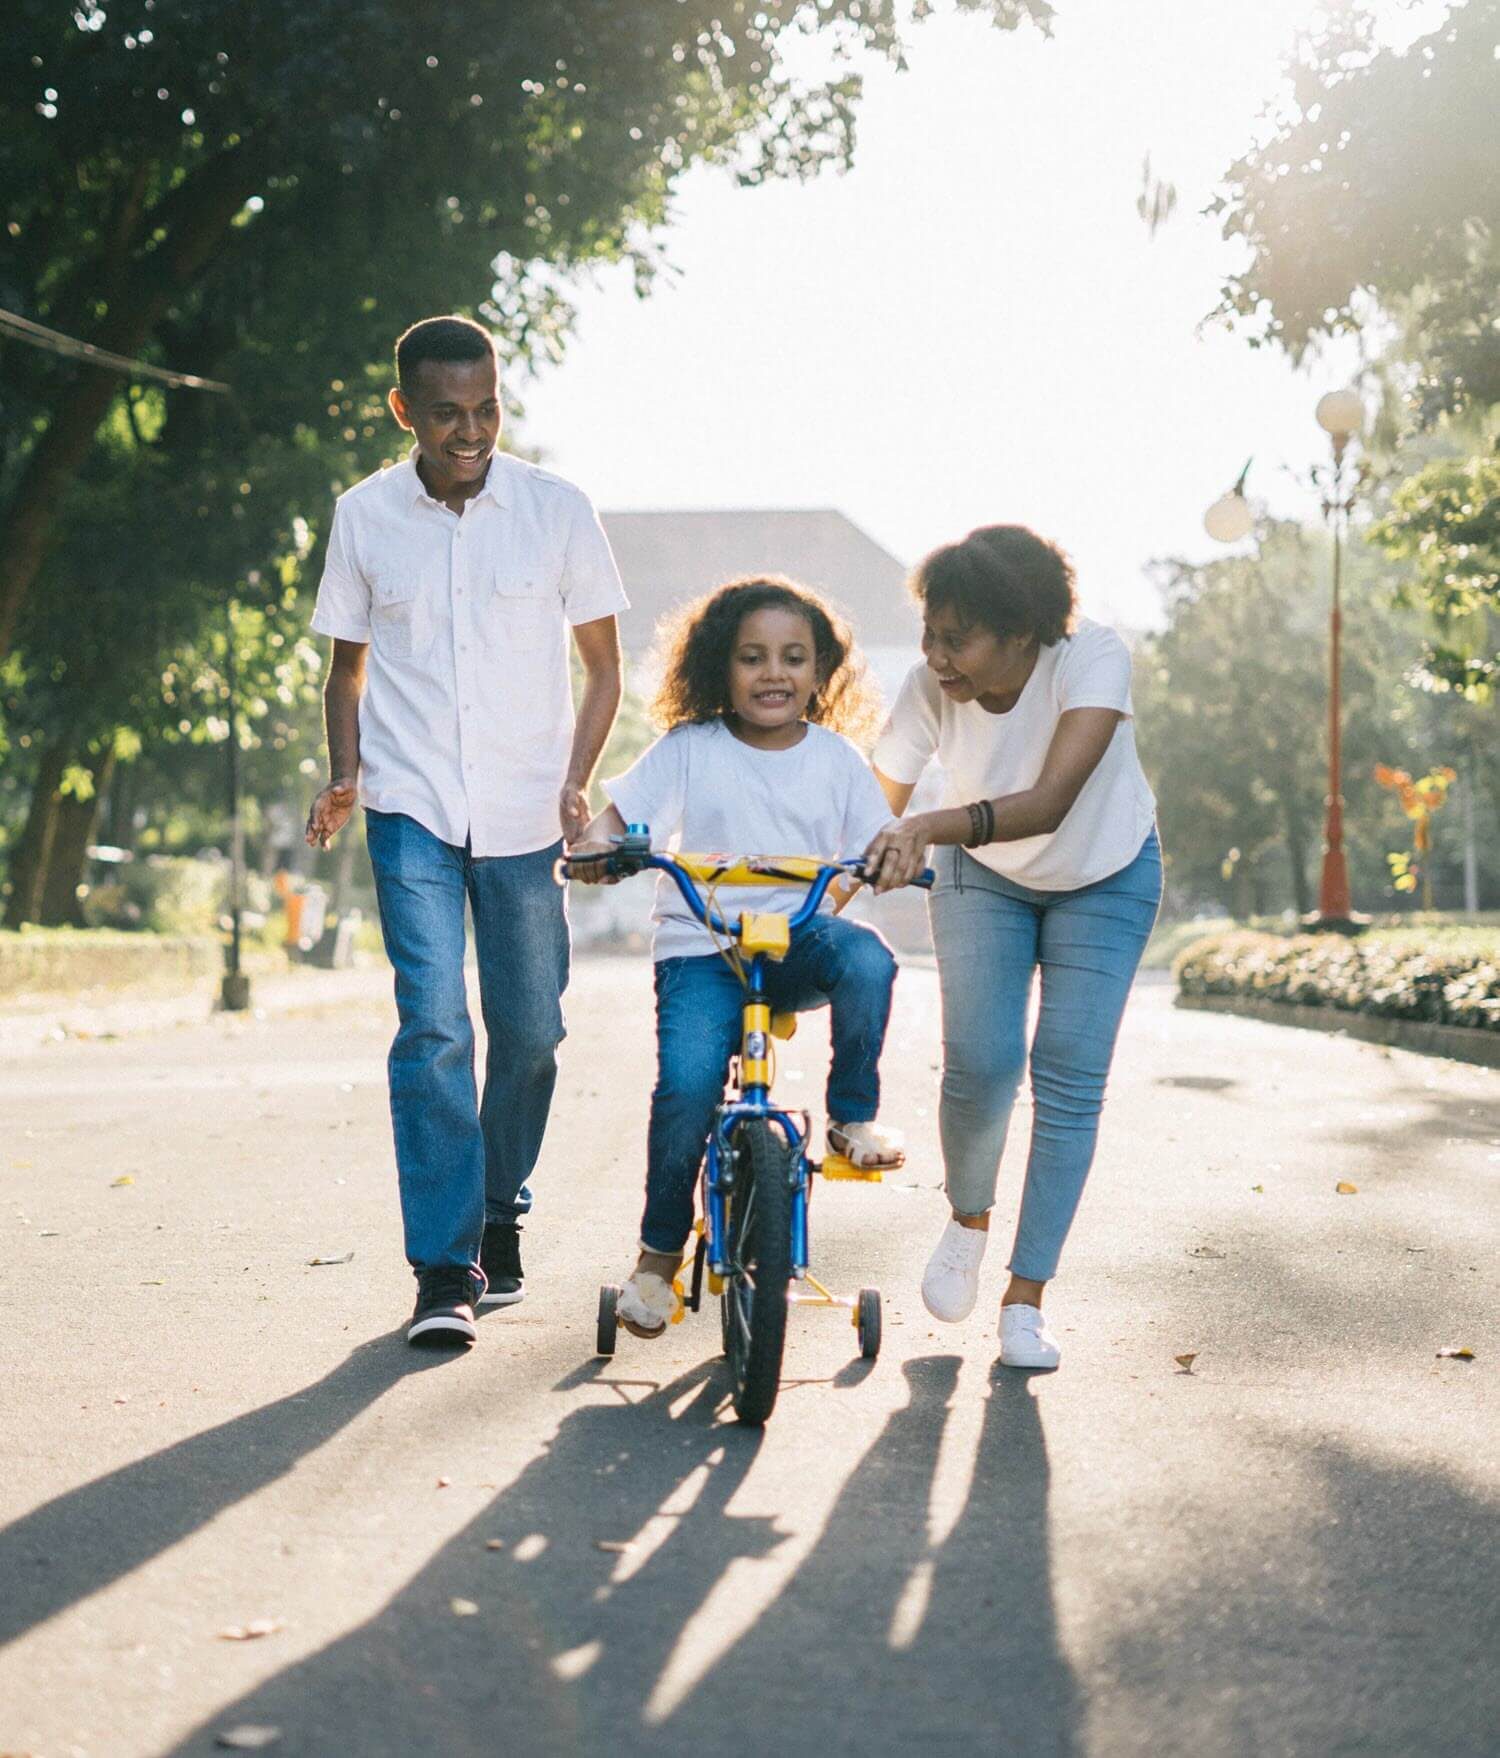 African American family playing in the street with young girl riding a bicycle with training wheels